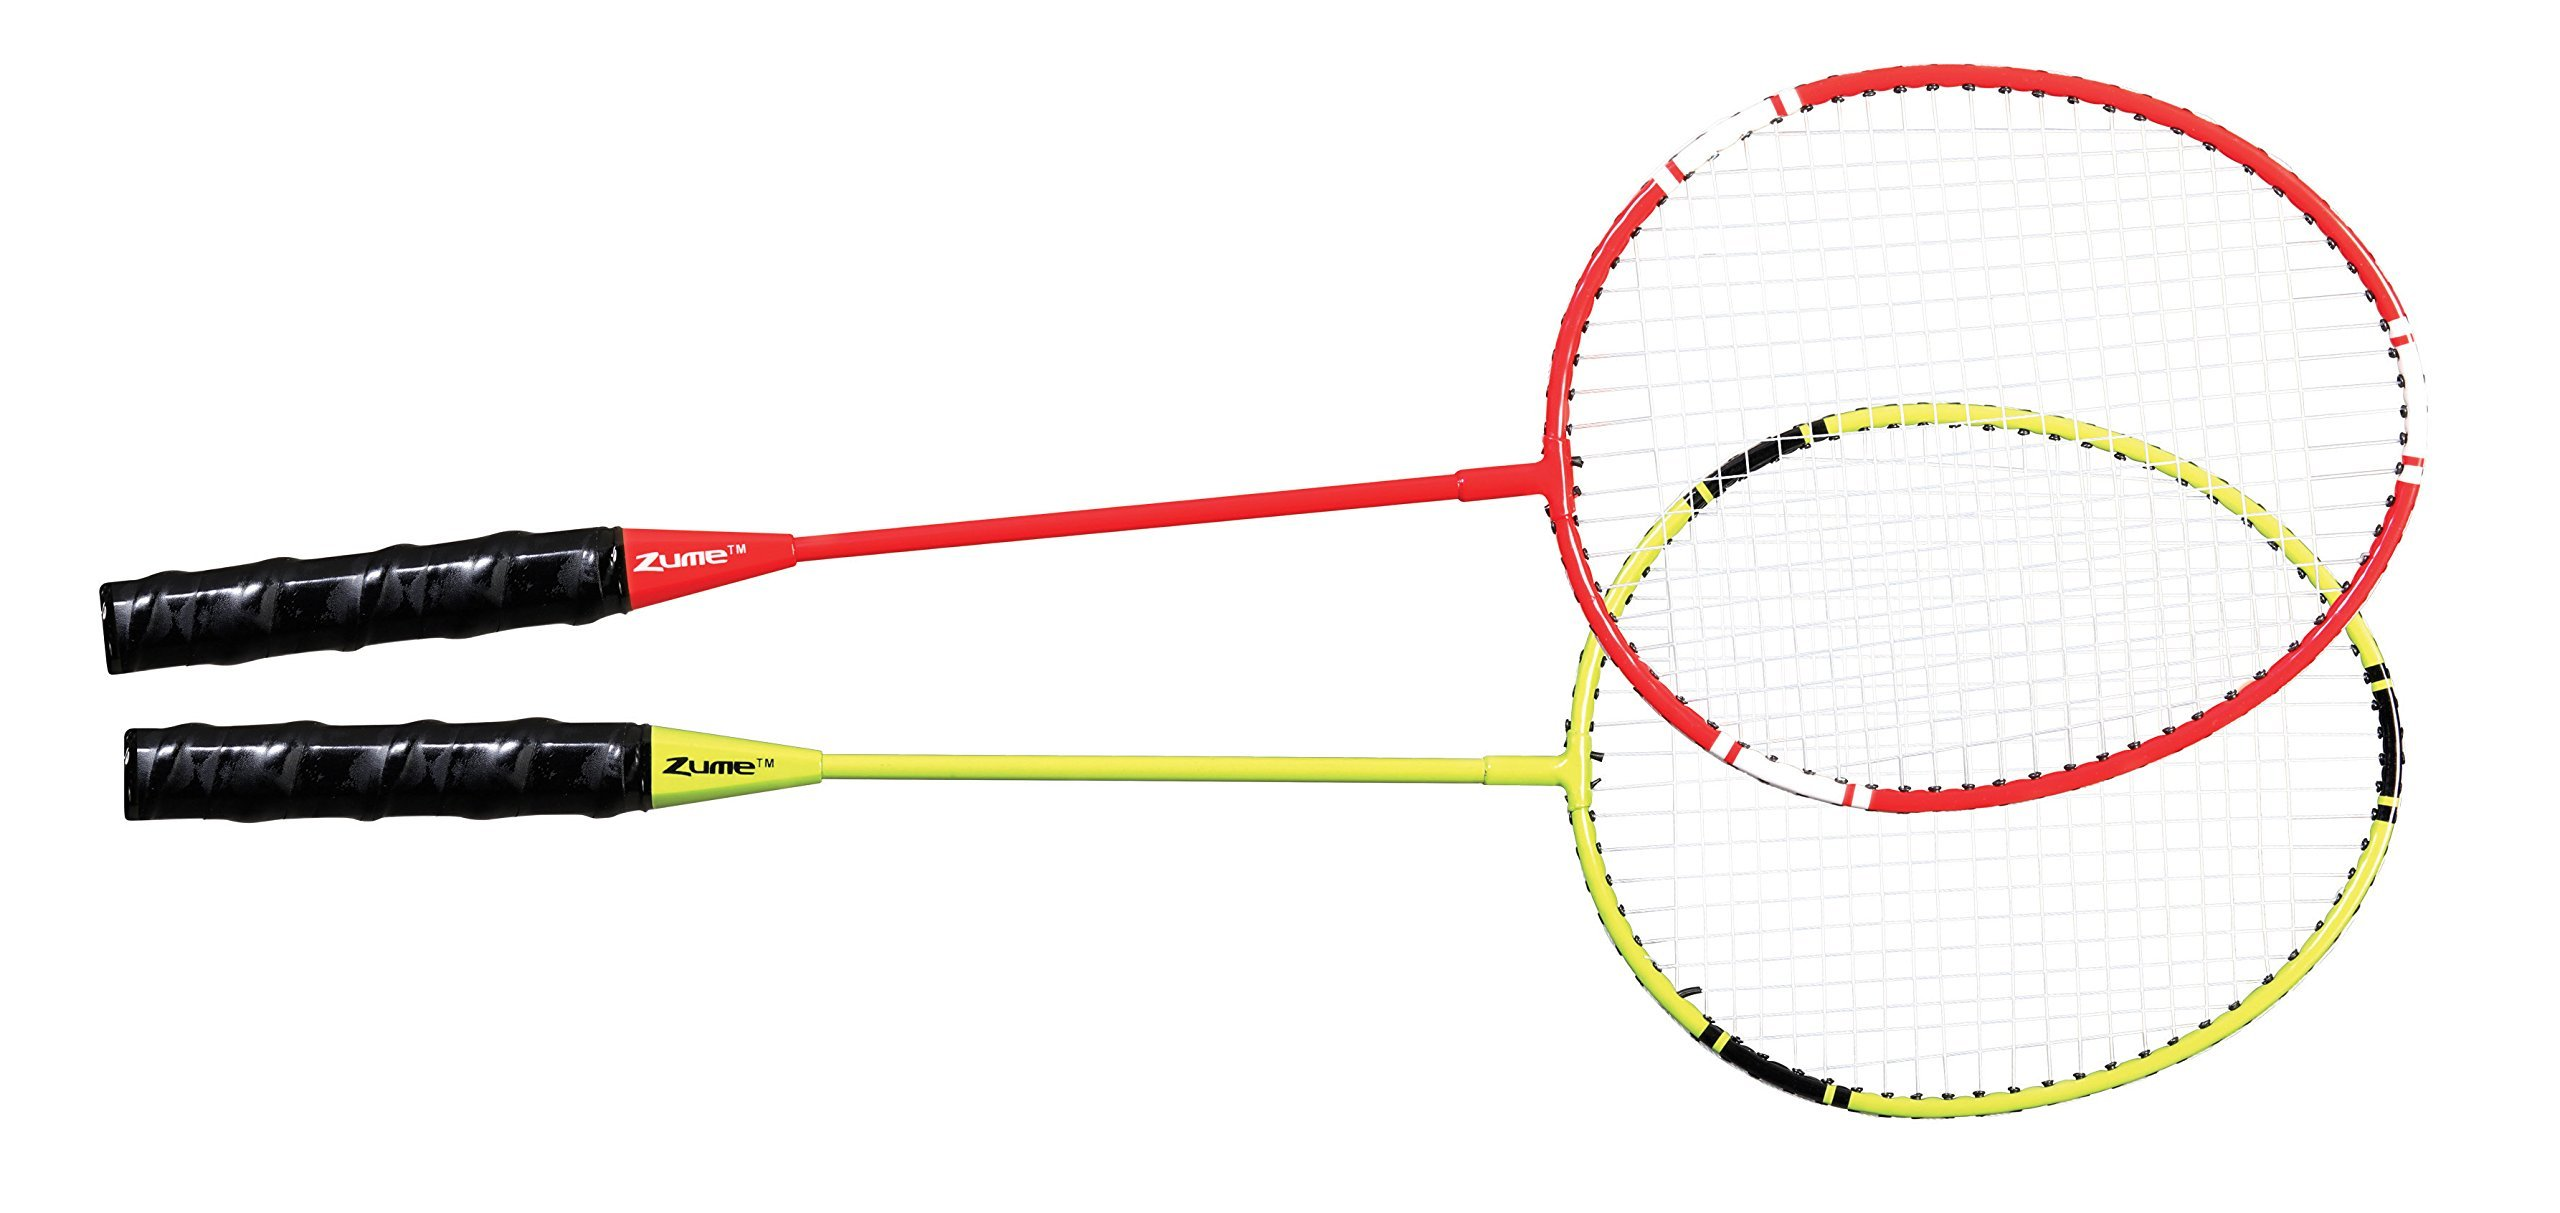 Zume Games Portable Badminton Set with Freestanding Base - Sets Up on Any Surface in Seconds - No Tools or Stakes Required (Renewed) by Zume (Image #5)